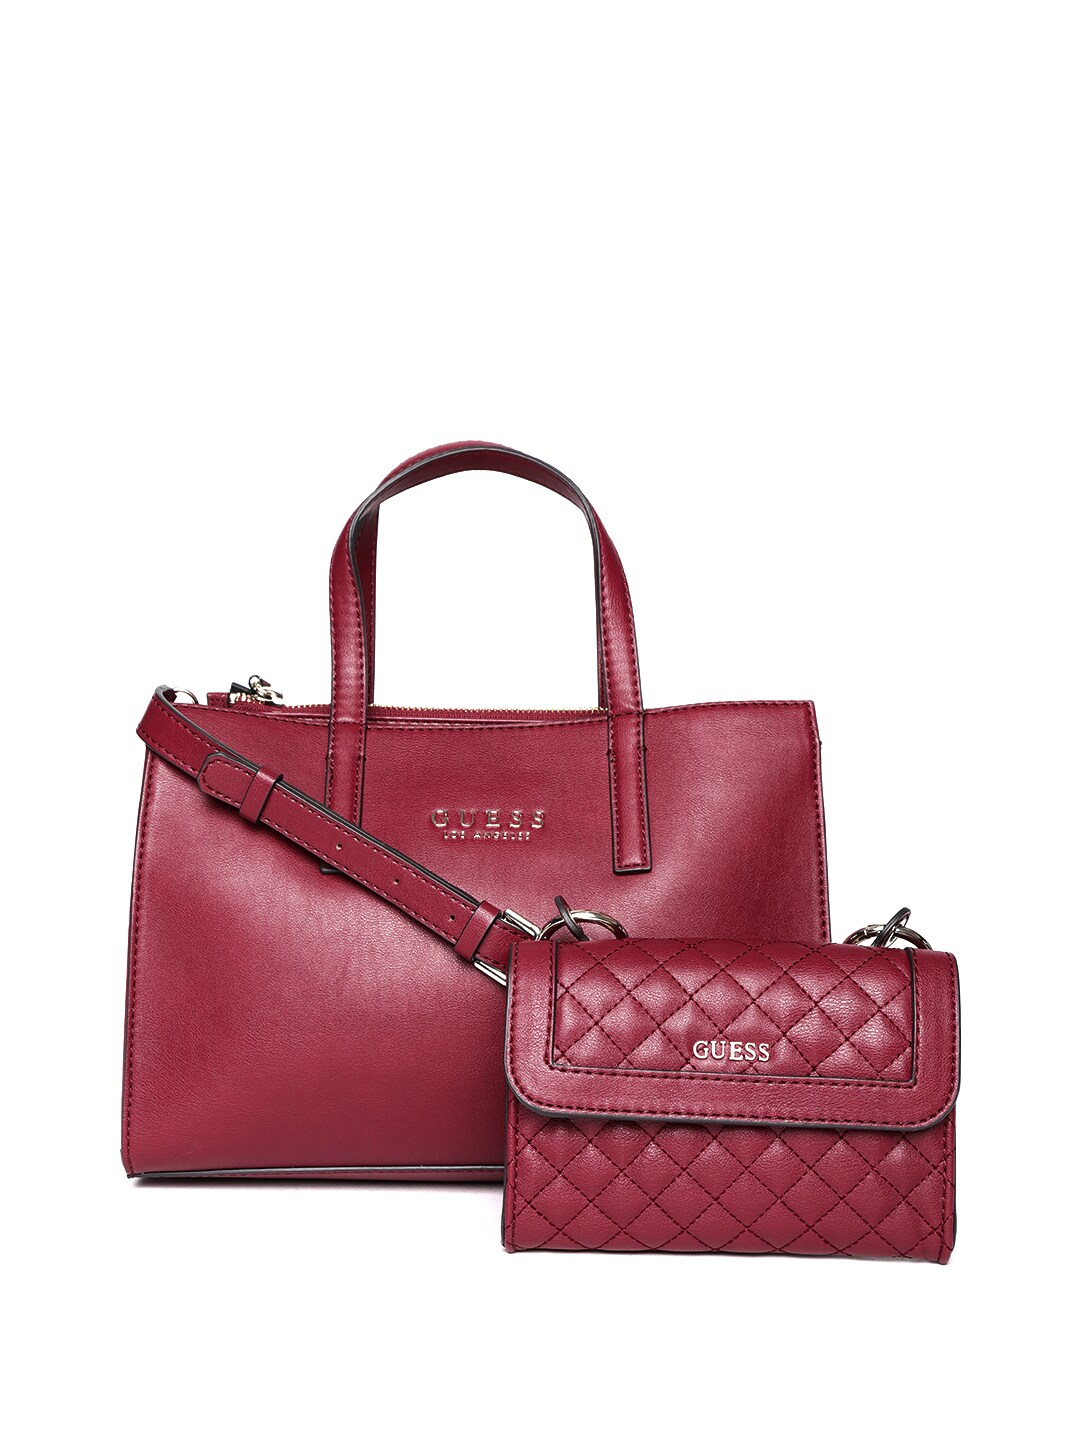 0a6b63f3d46b Handbags And Bags - Buy Handbags And Bags online in India